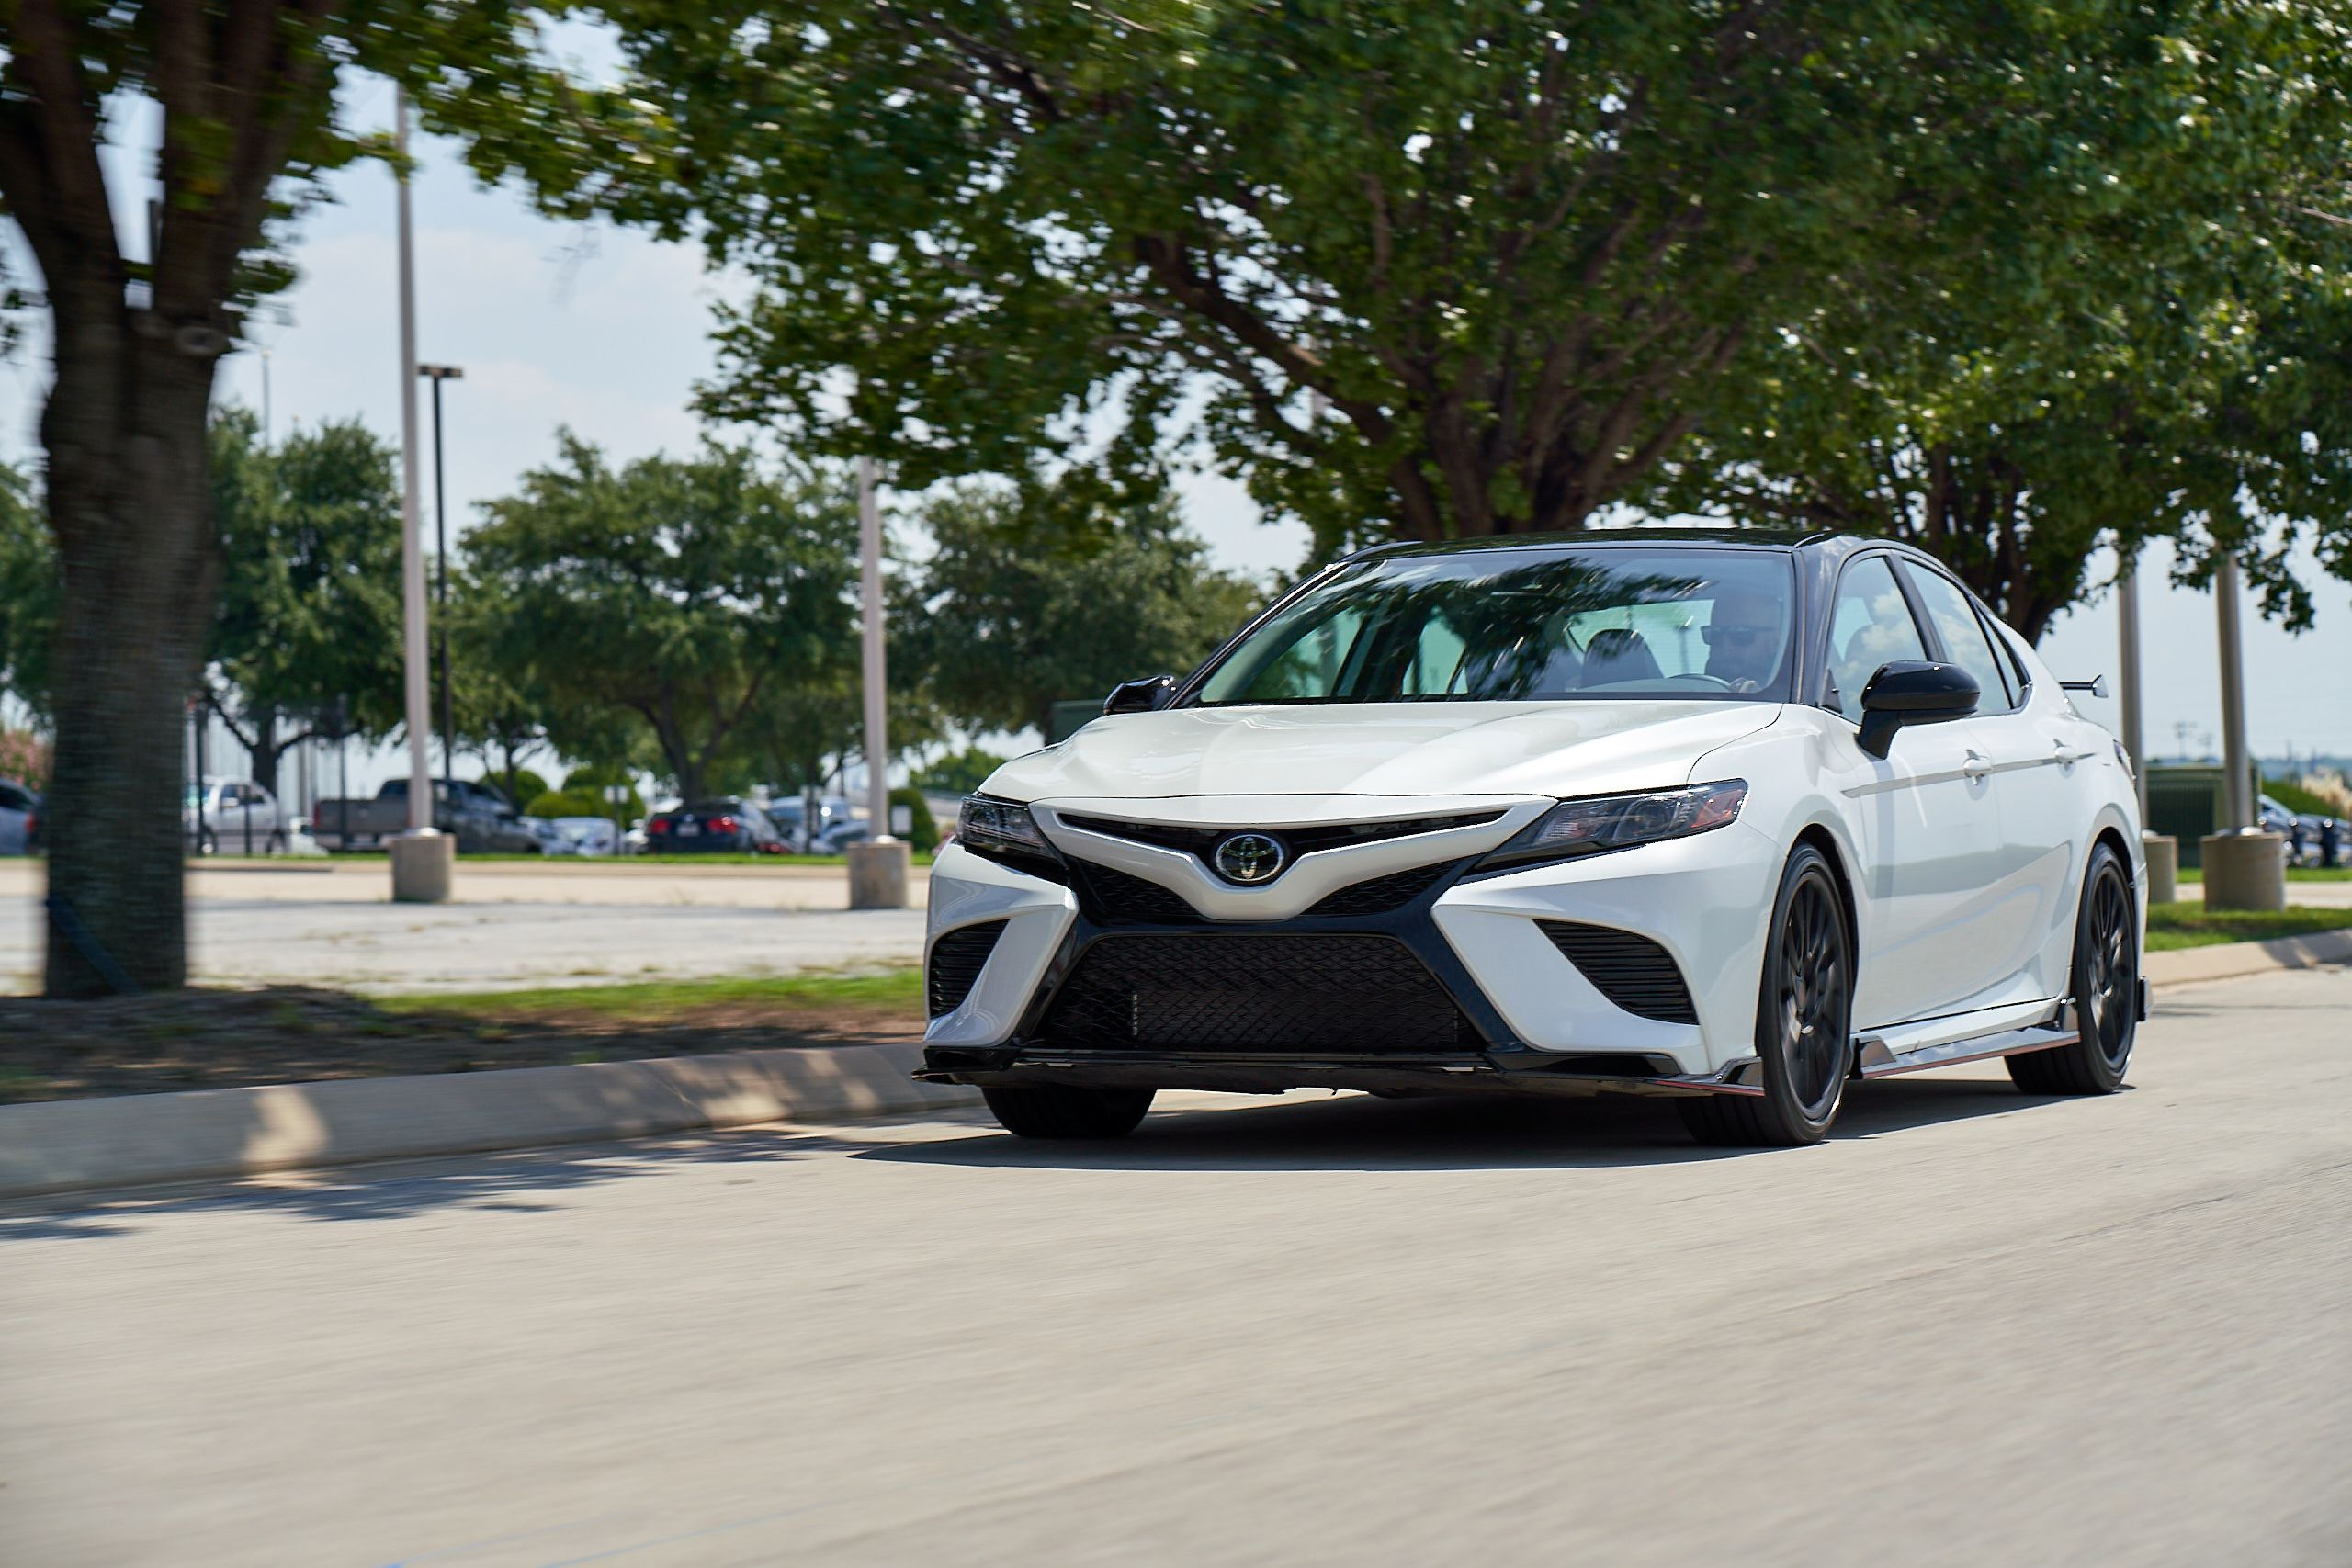 2020 Toyota Camry Trd Changes The Camry S Game